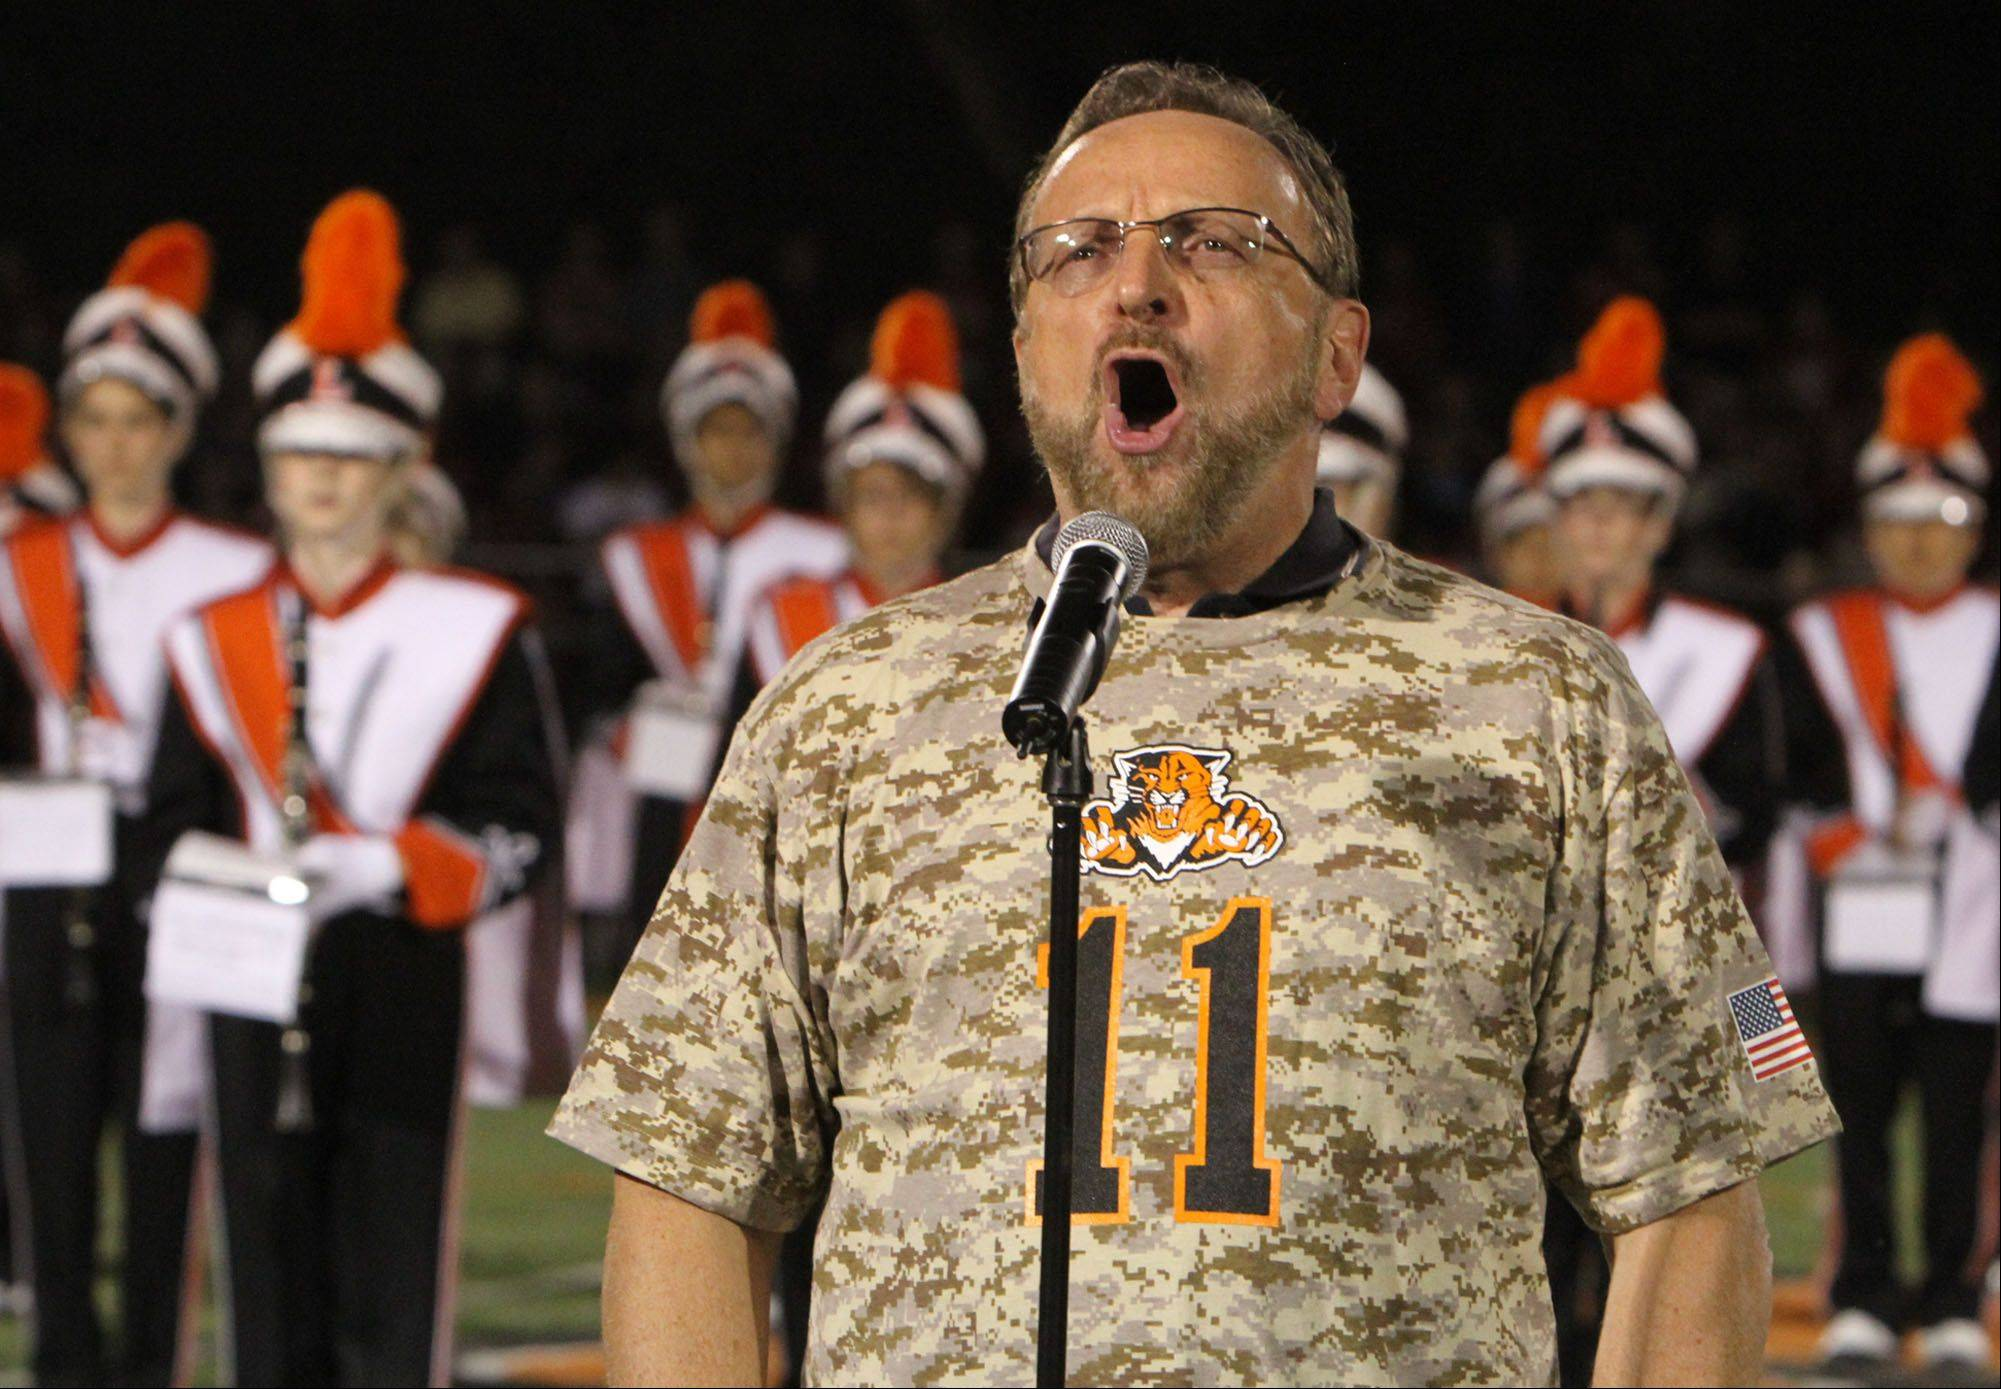 Wayne Messmer sings the national anthem during military appreciation night as Libertyville battles Barrington at Libertyville on Friday, August 26th.